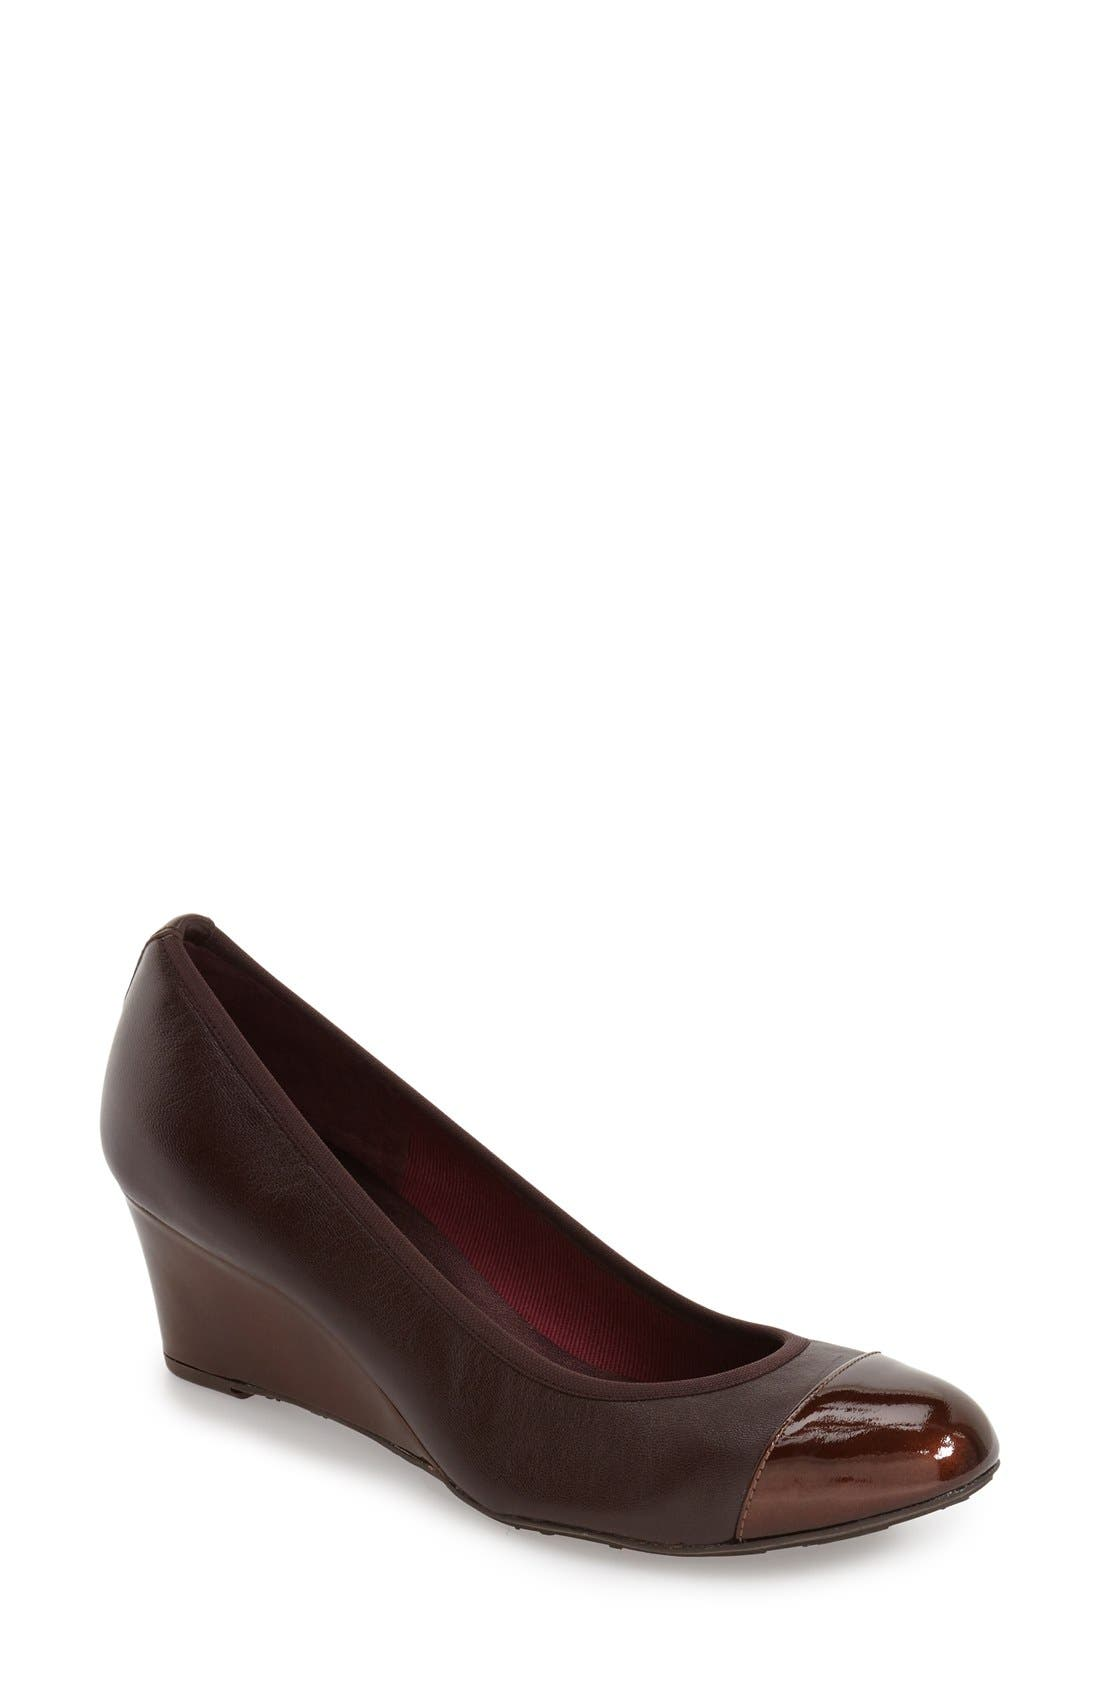 Main Image - French Sole 'Juggle' Wedge Pump